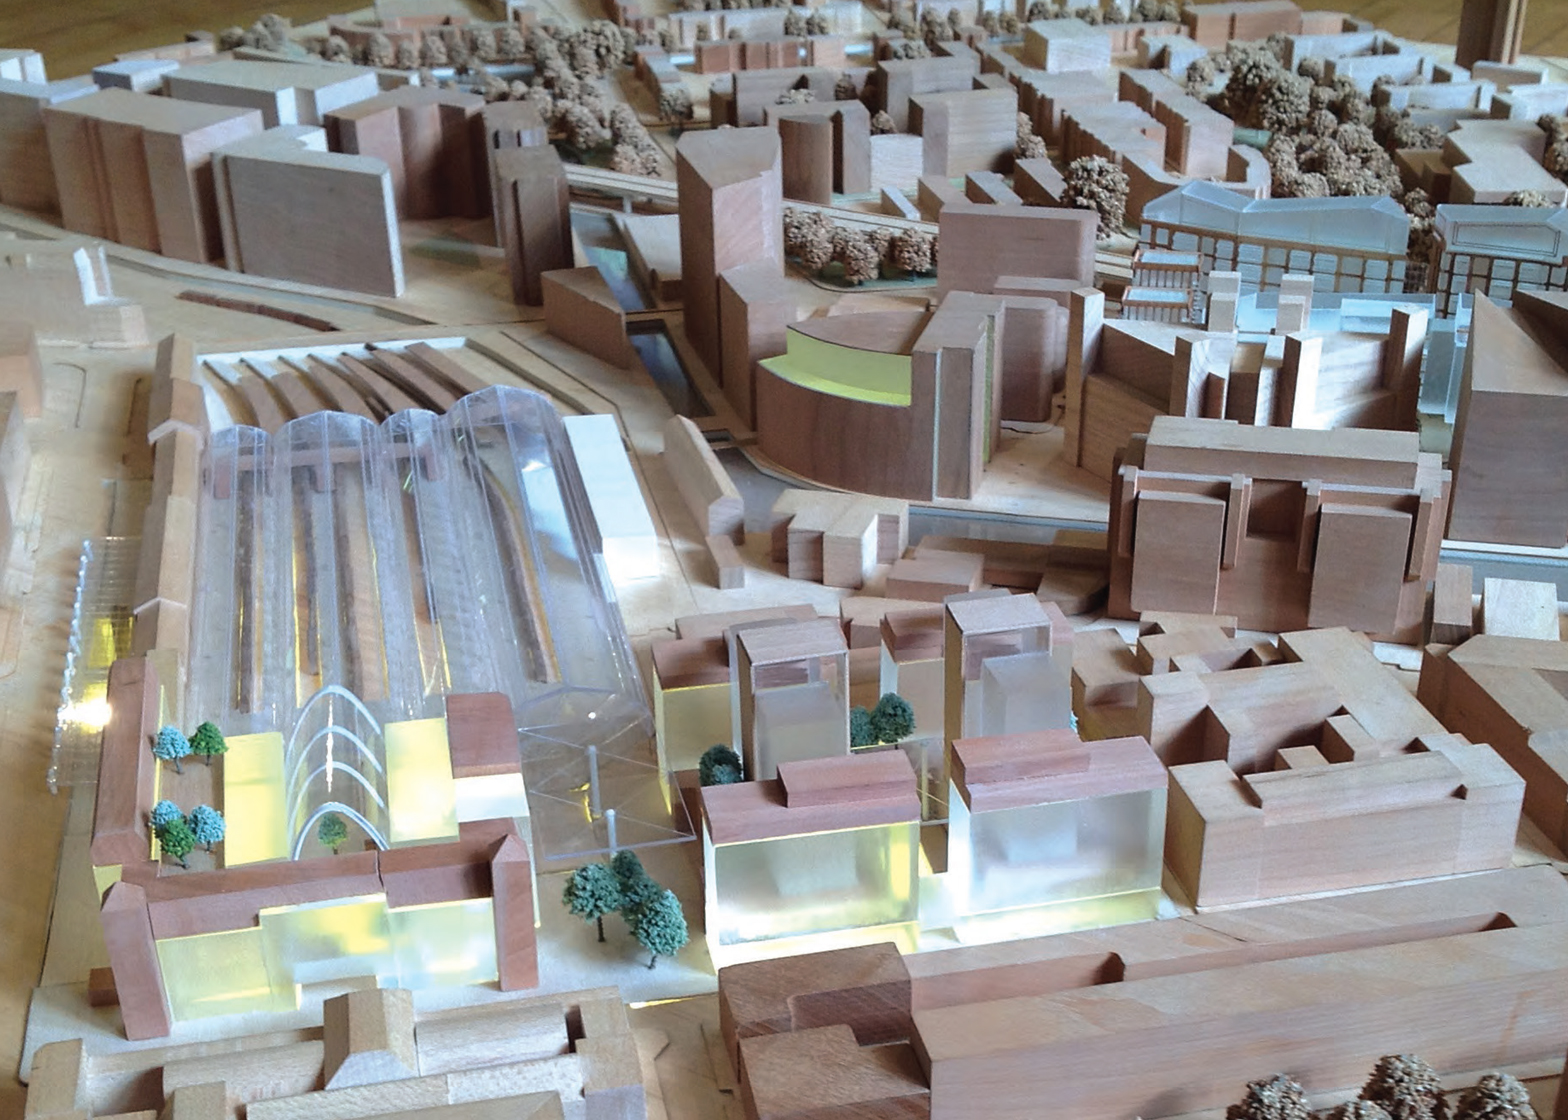 A model of Terry Farrell's rival scheme for the Paddington site